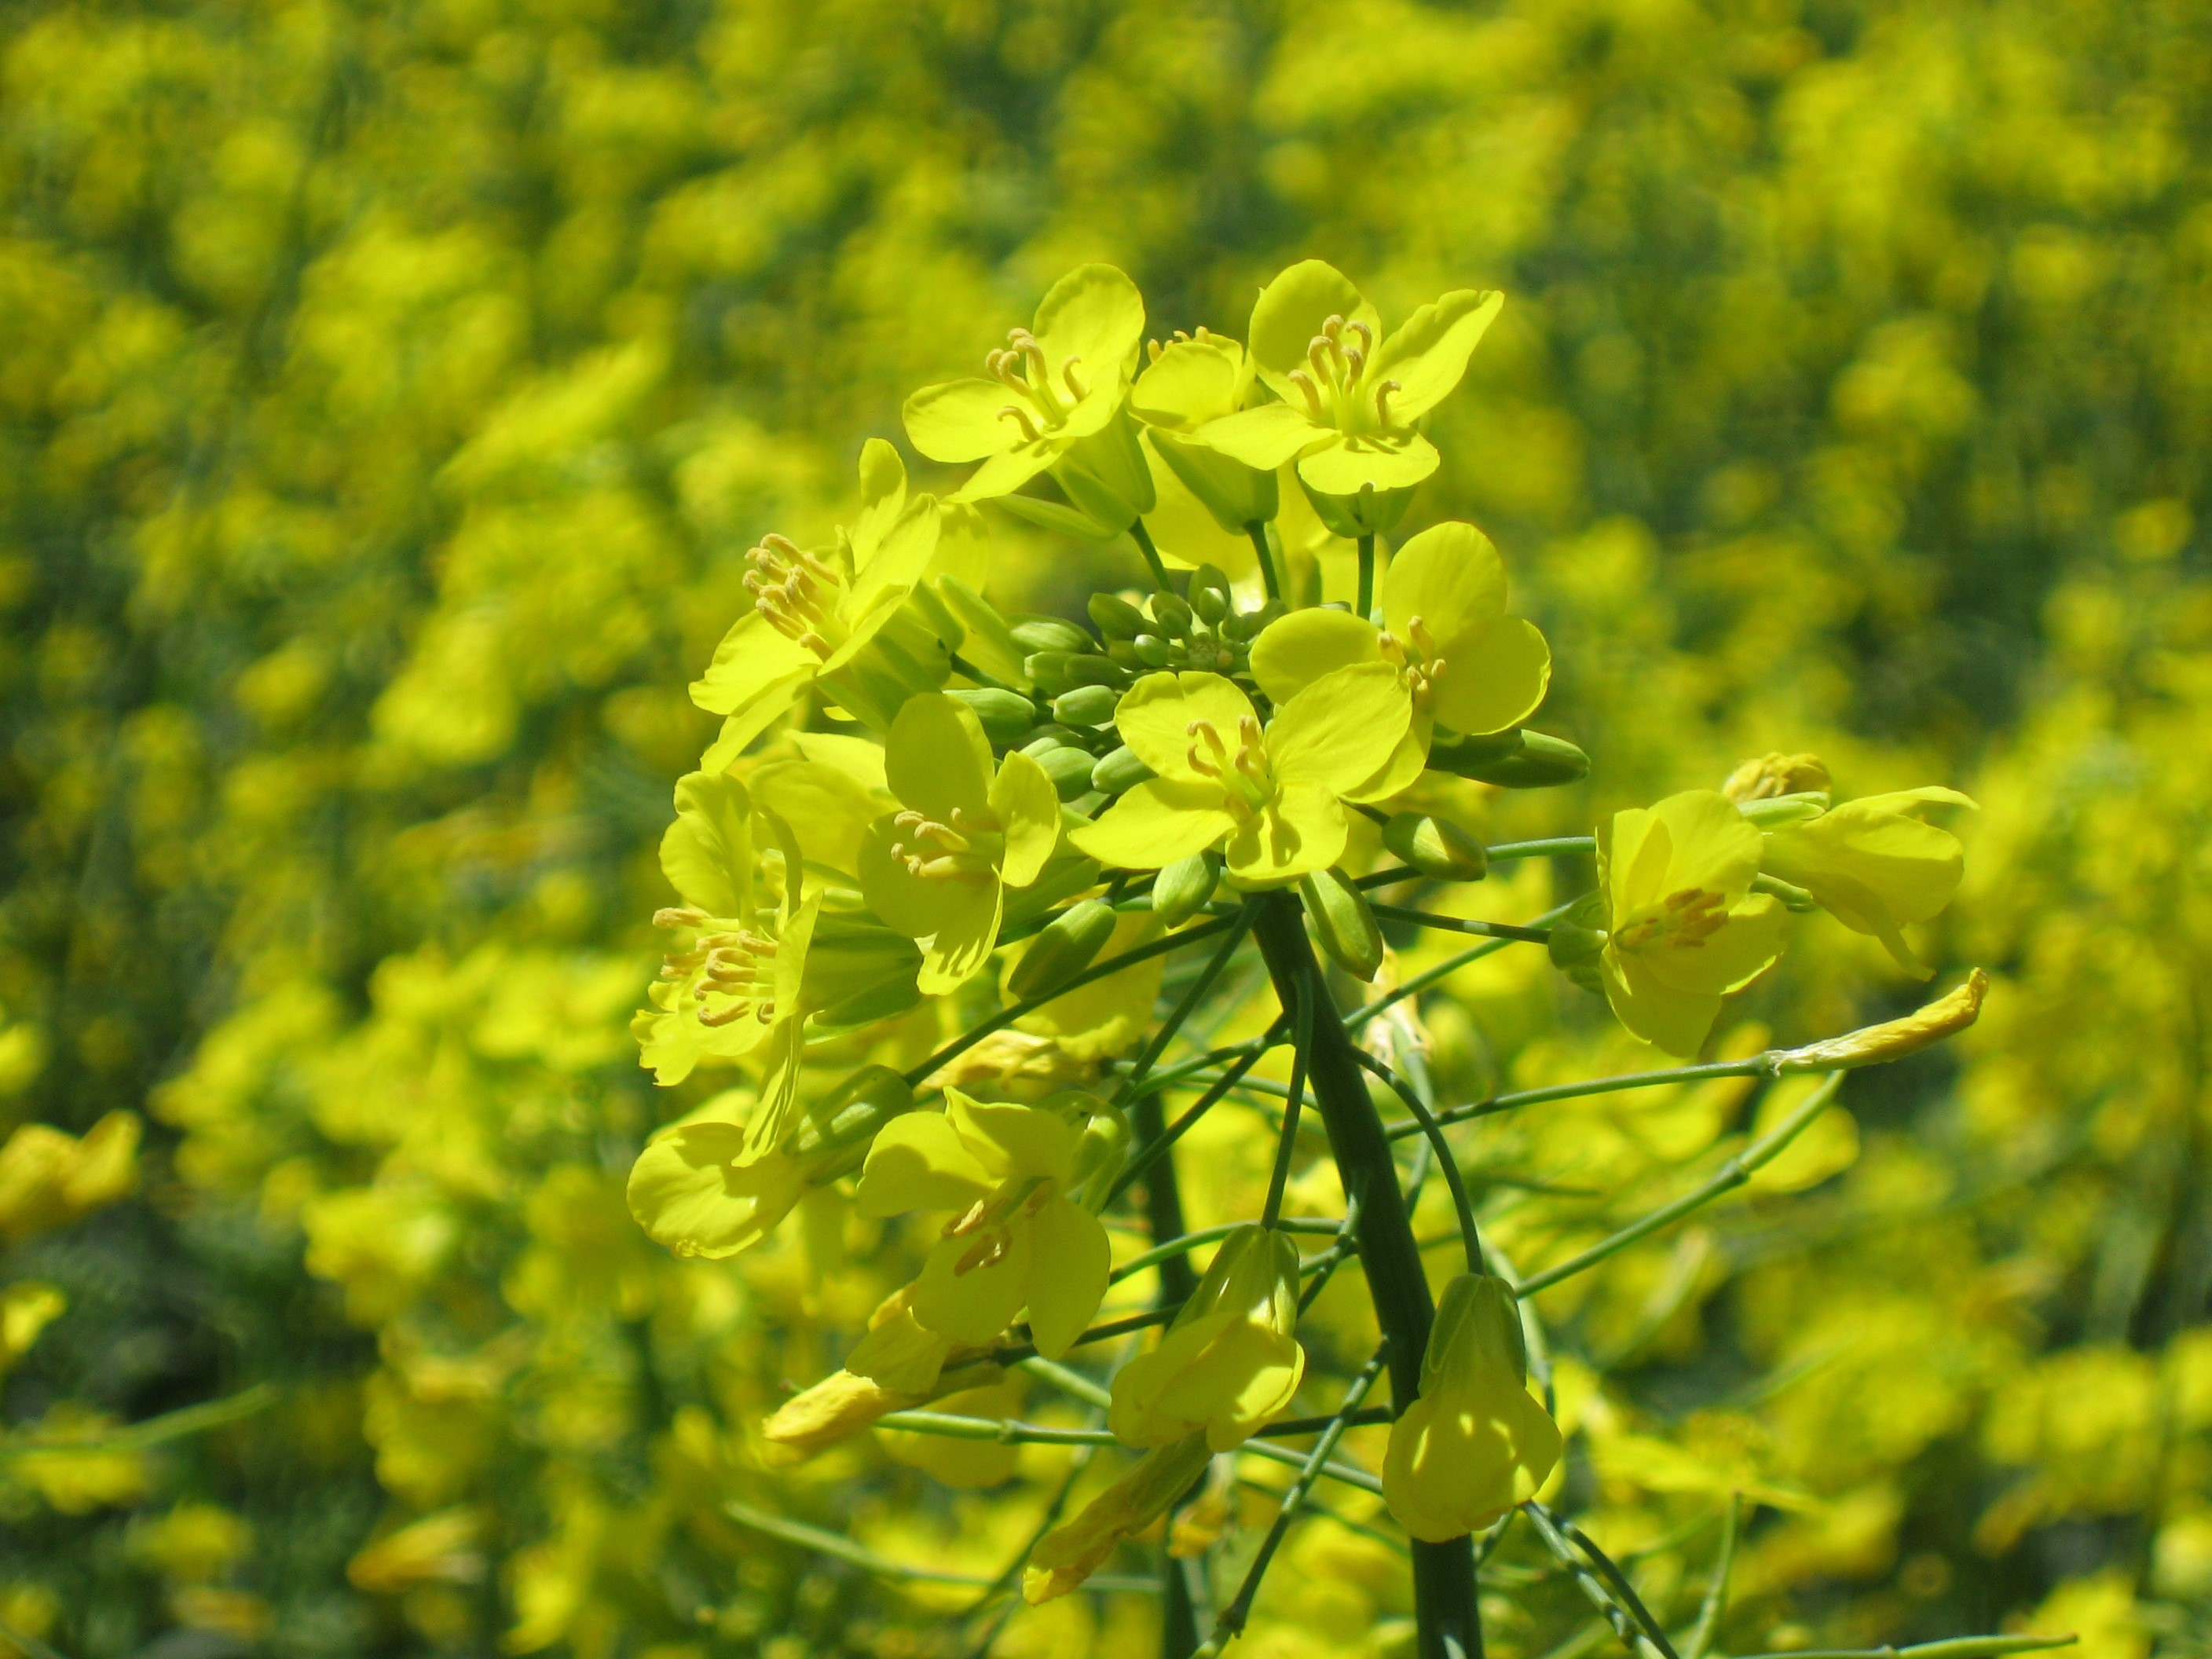 Oklahoma farm report us looking to expand canola crop due to demand us looking to expand canola crop due to demand mightylinksfo